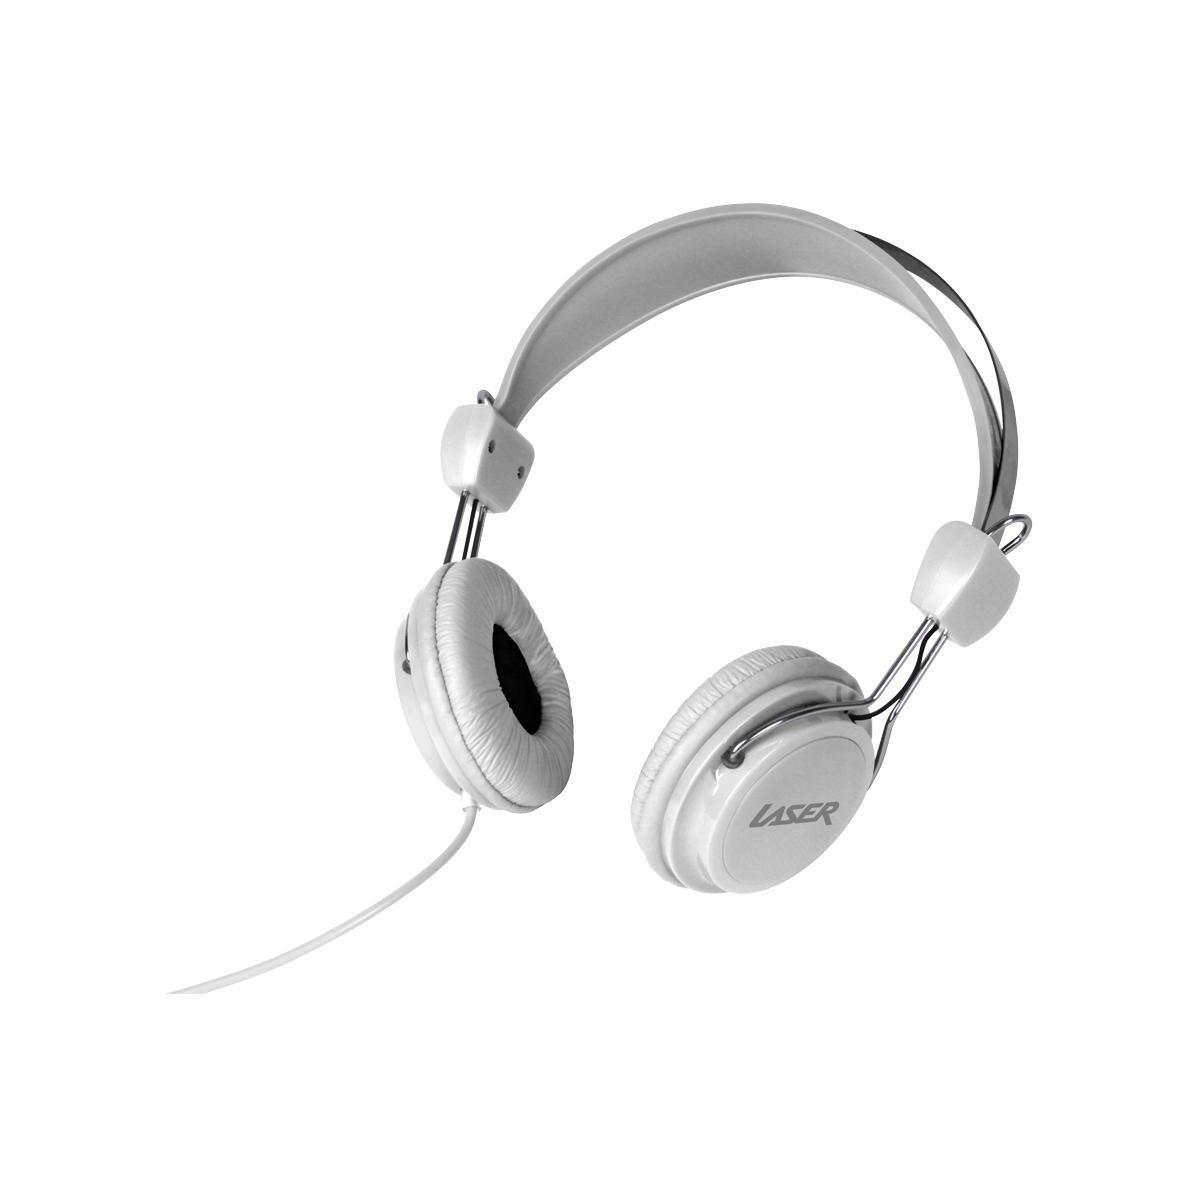 Laser Kids Stereo Headphones – White